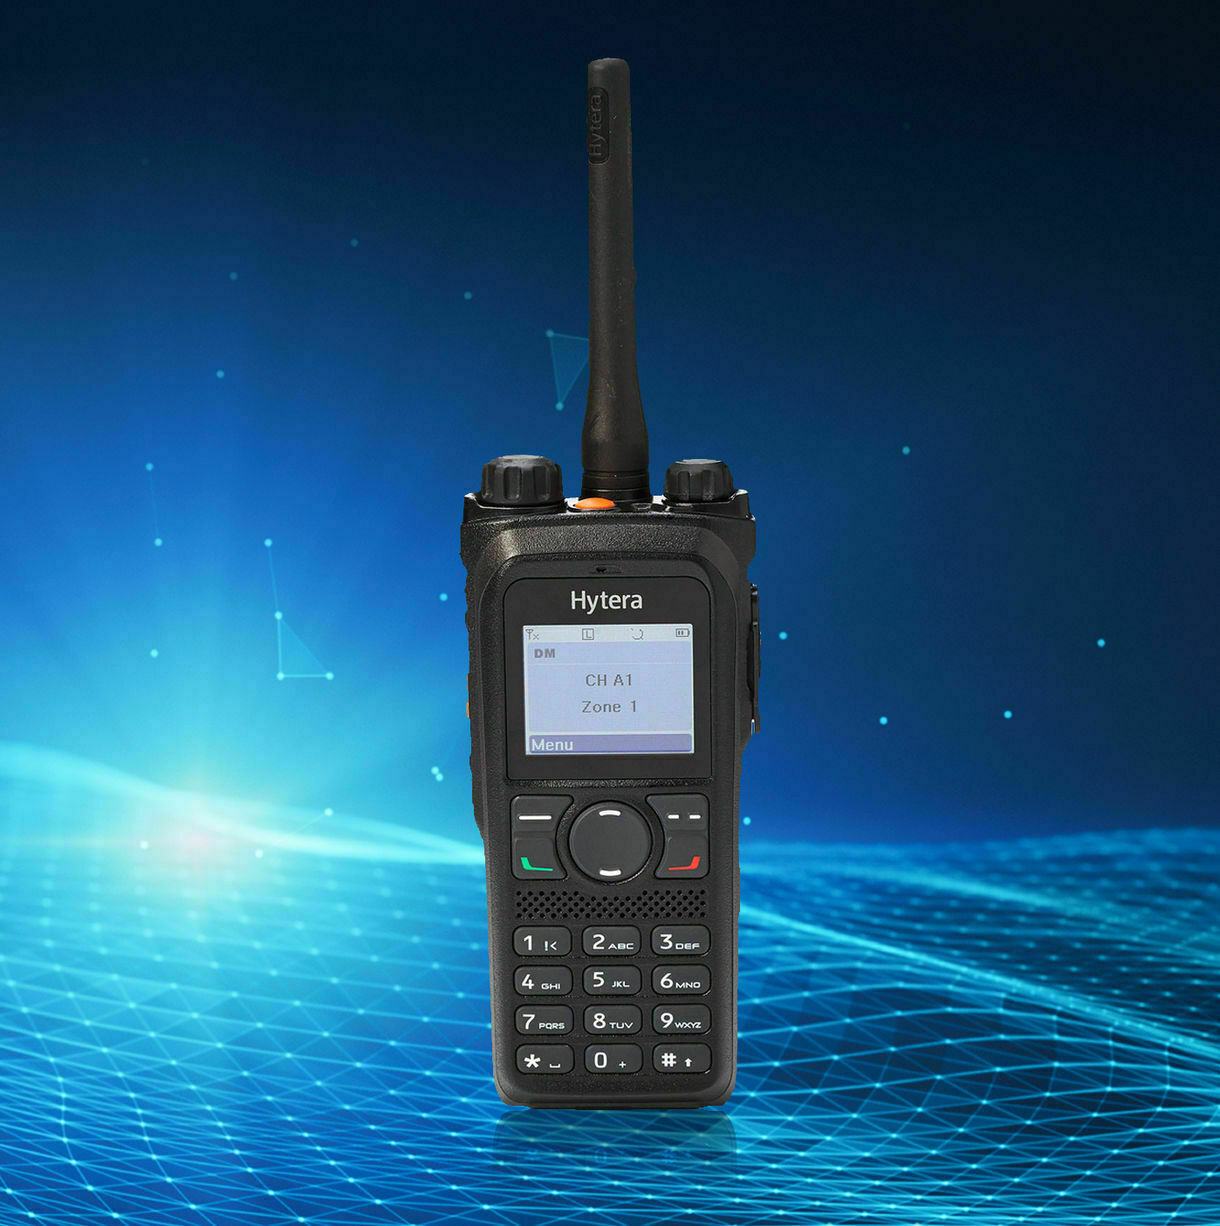 0000 hytera products blue PD985